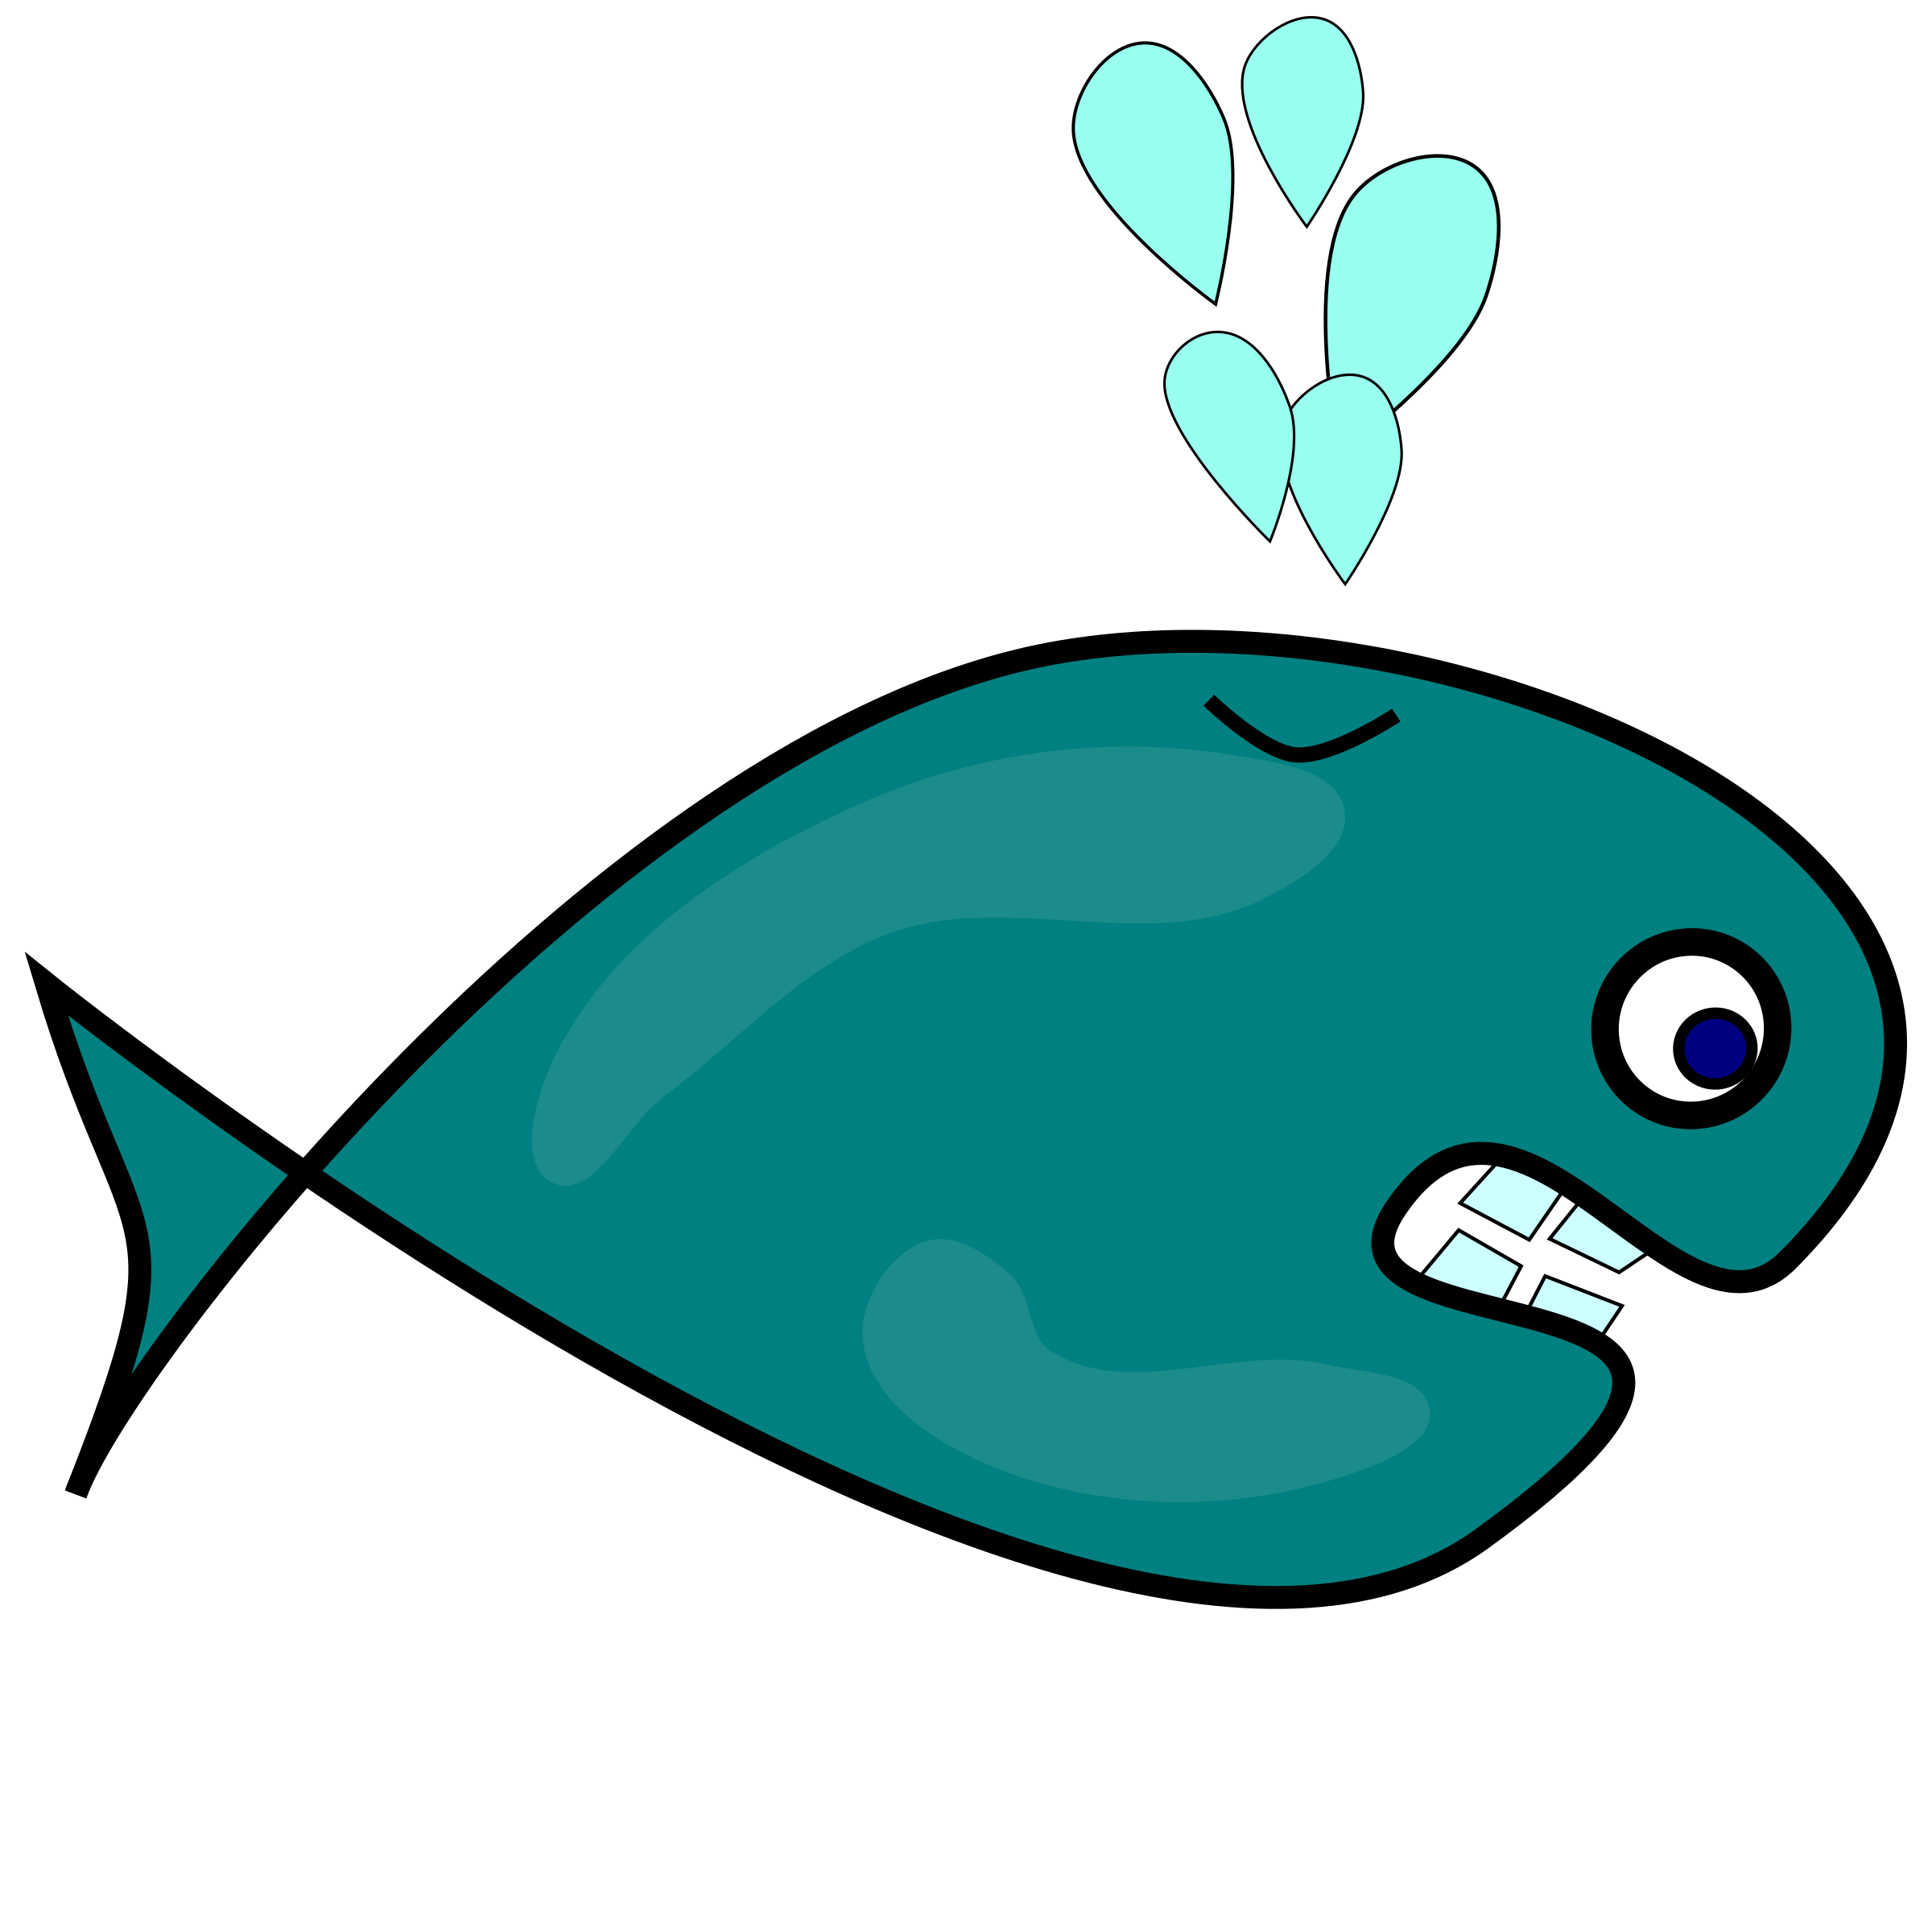 Fish clipart whale. Big image png